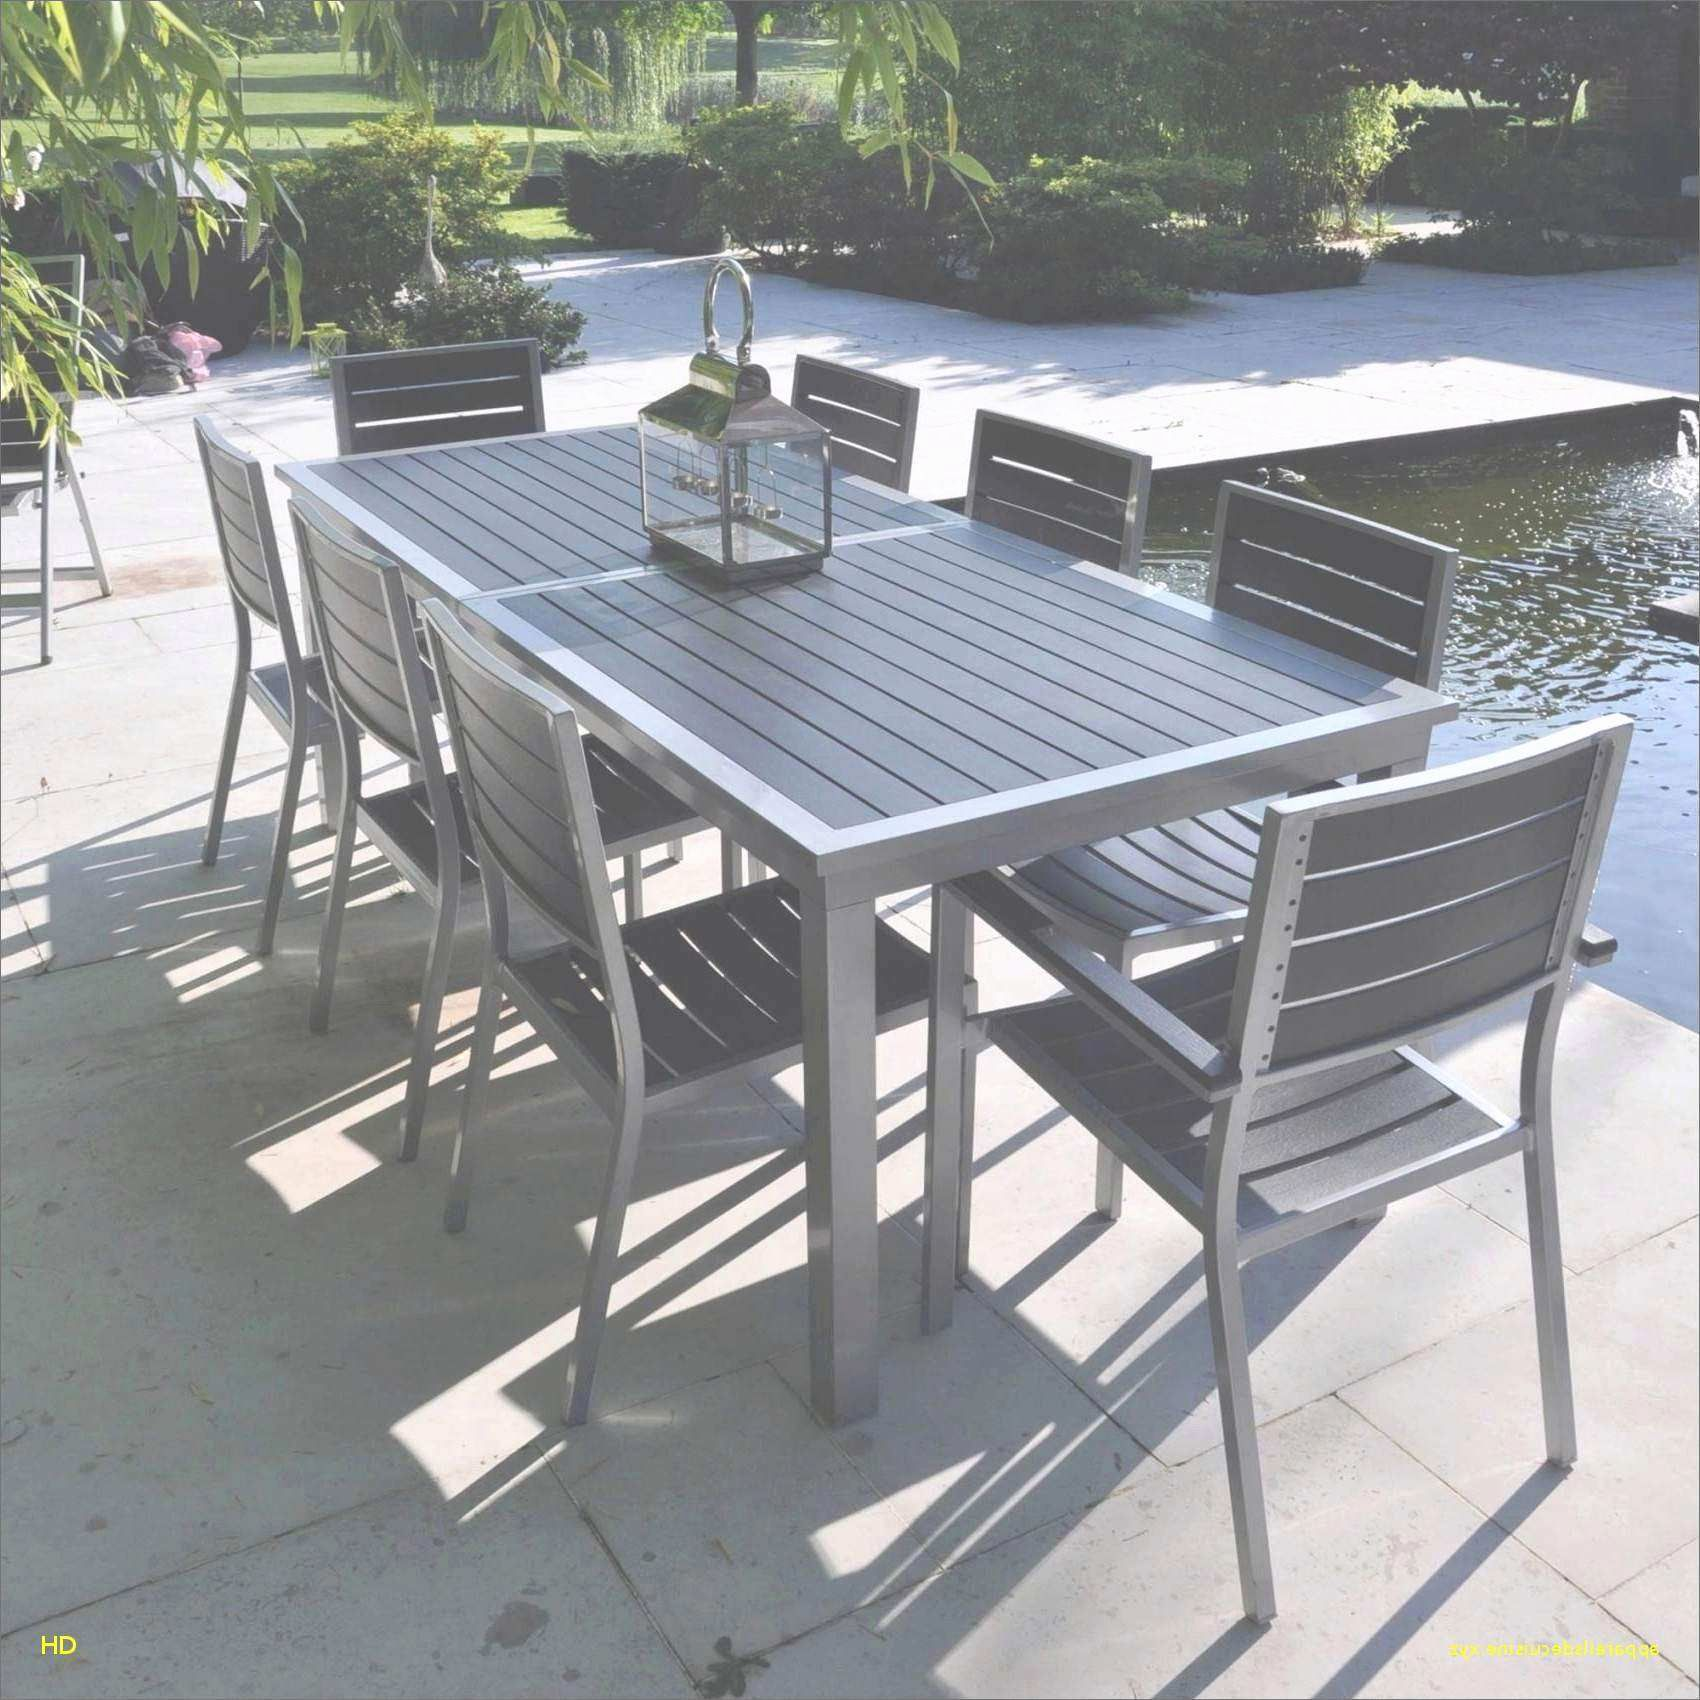 Table Terrasse Pas Cher En 2020 Housse Salon De Jardin Table De Jardin Table Terrasse